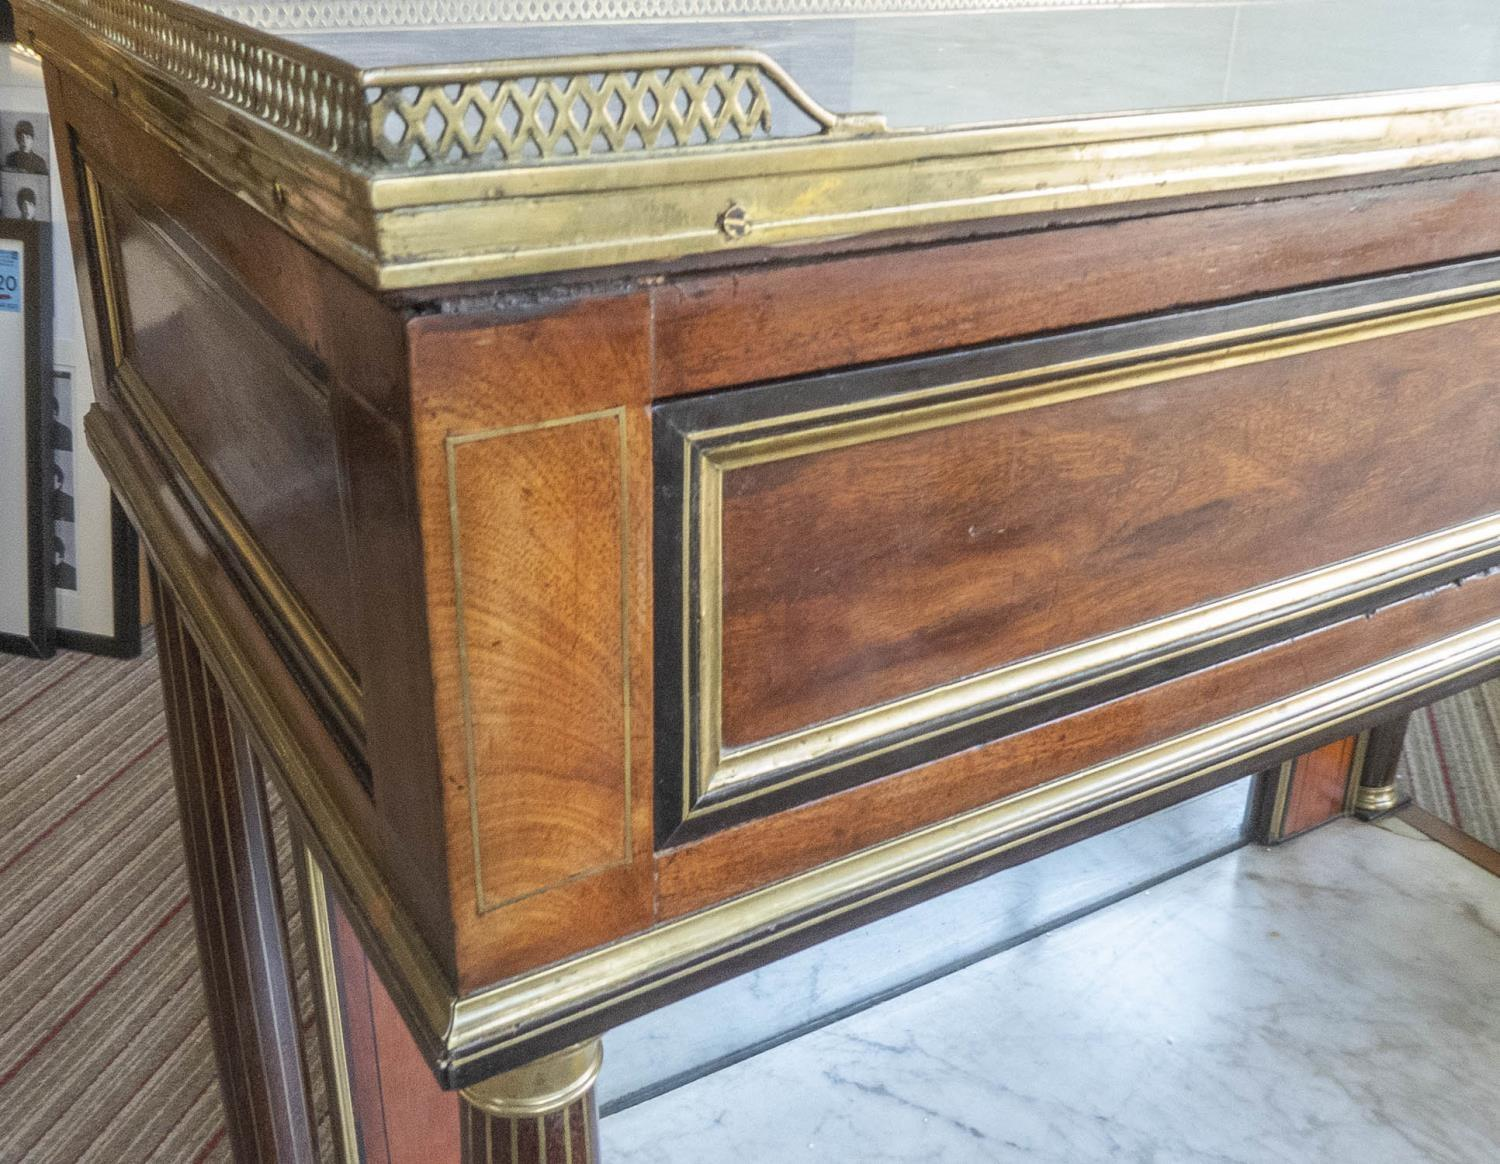 CONSOLE DESSERTE, late Louis XVI mahogany, ebony and brass mounted, white marble top above a - Image 4 of 7